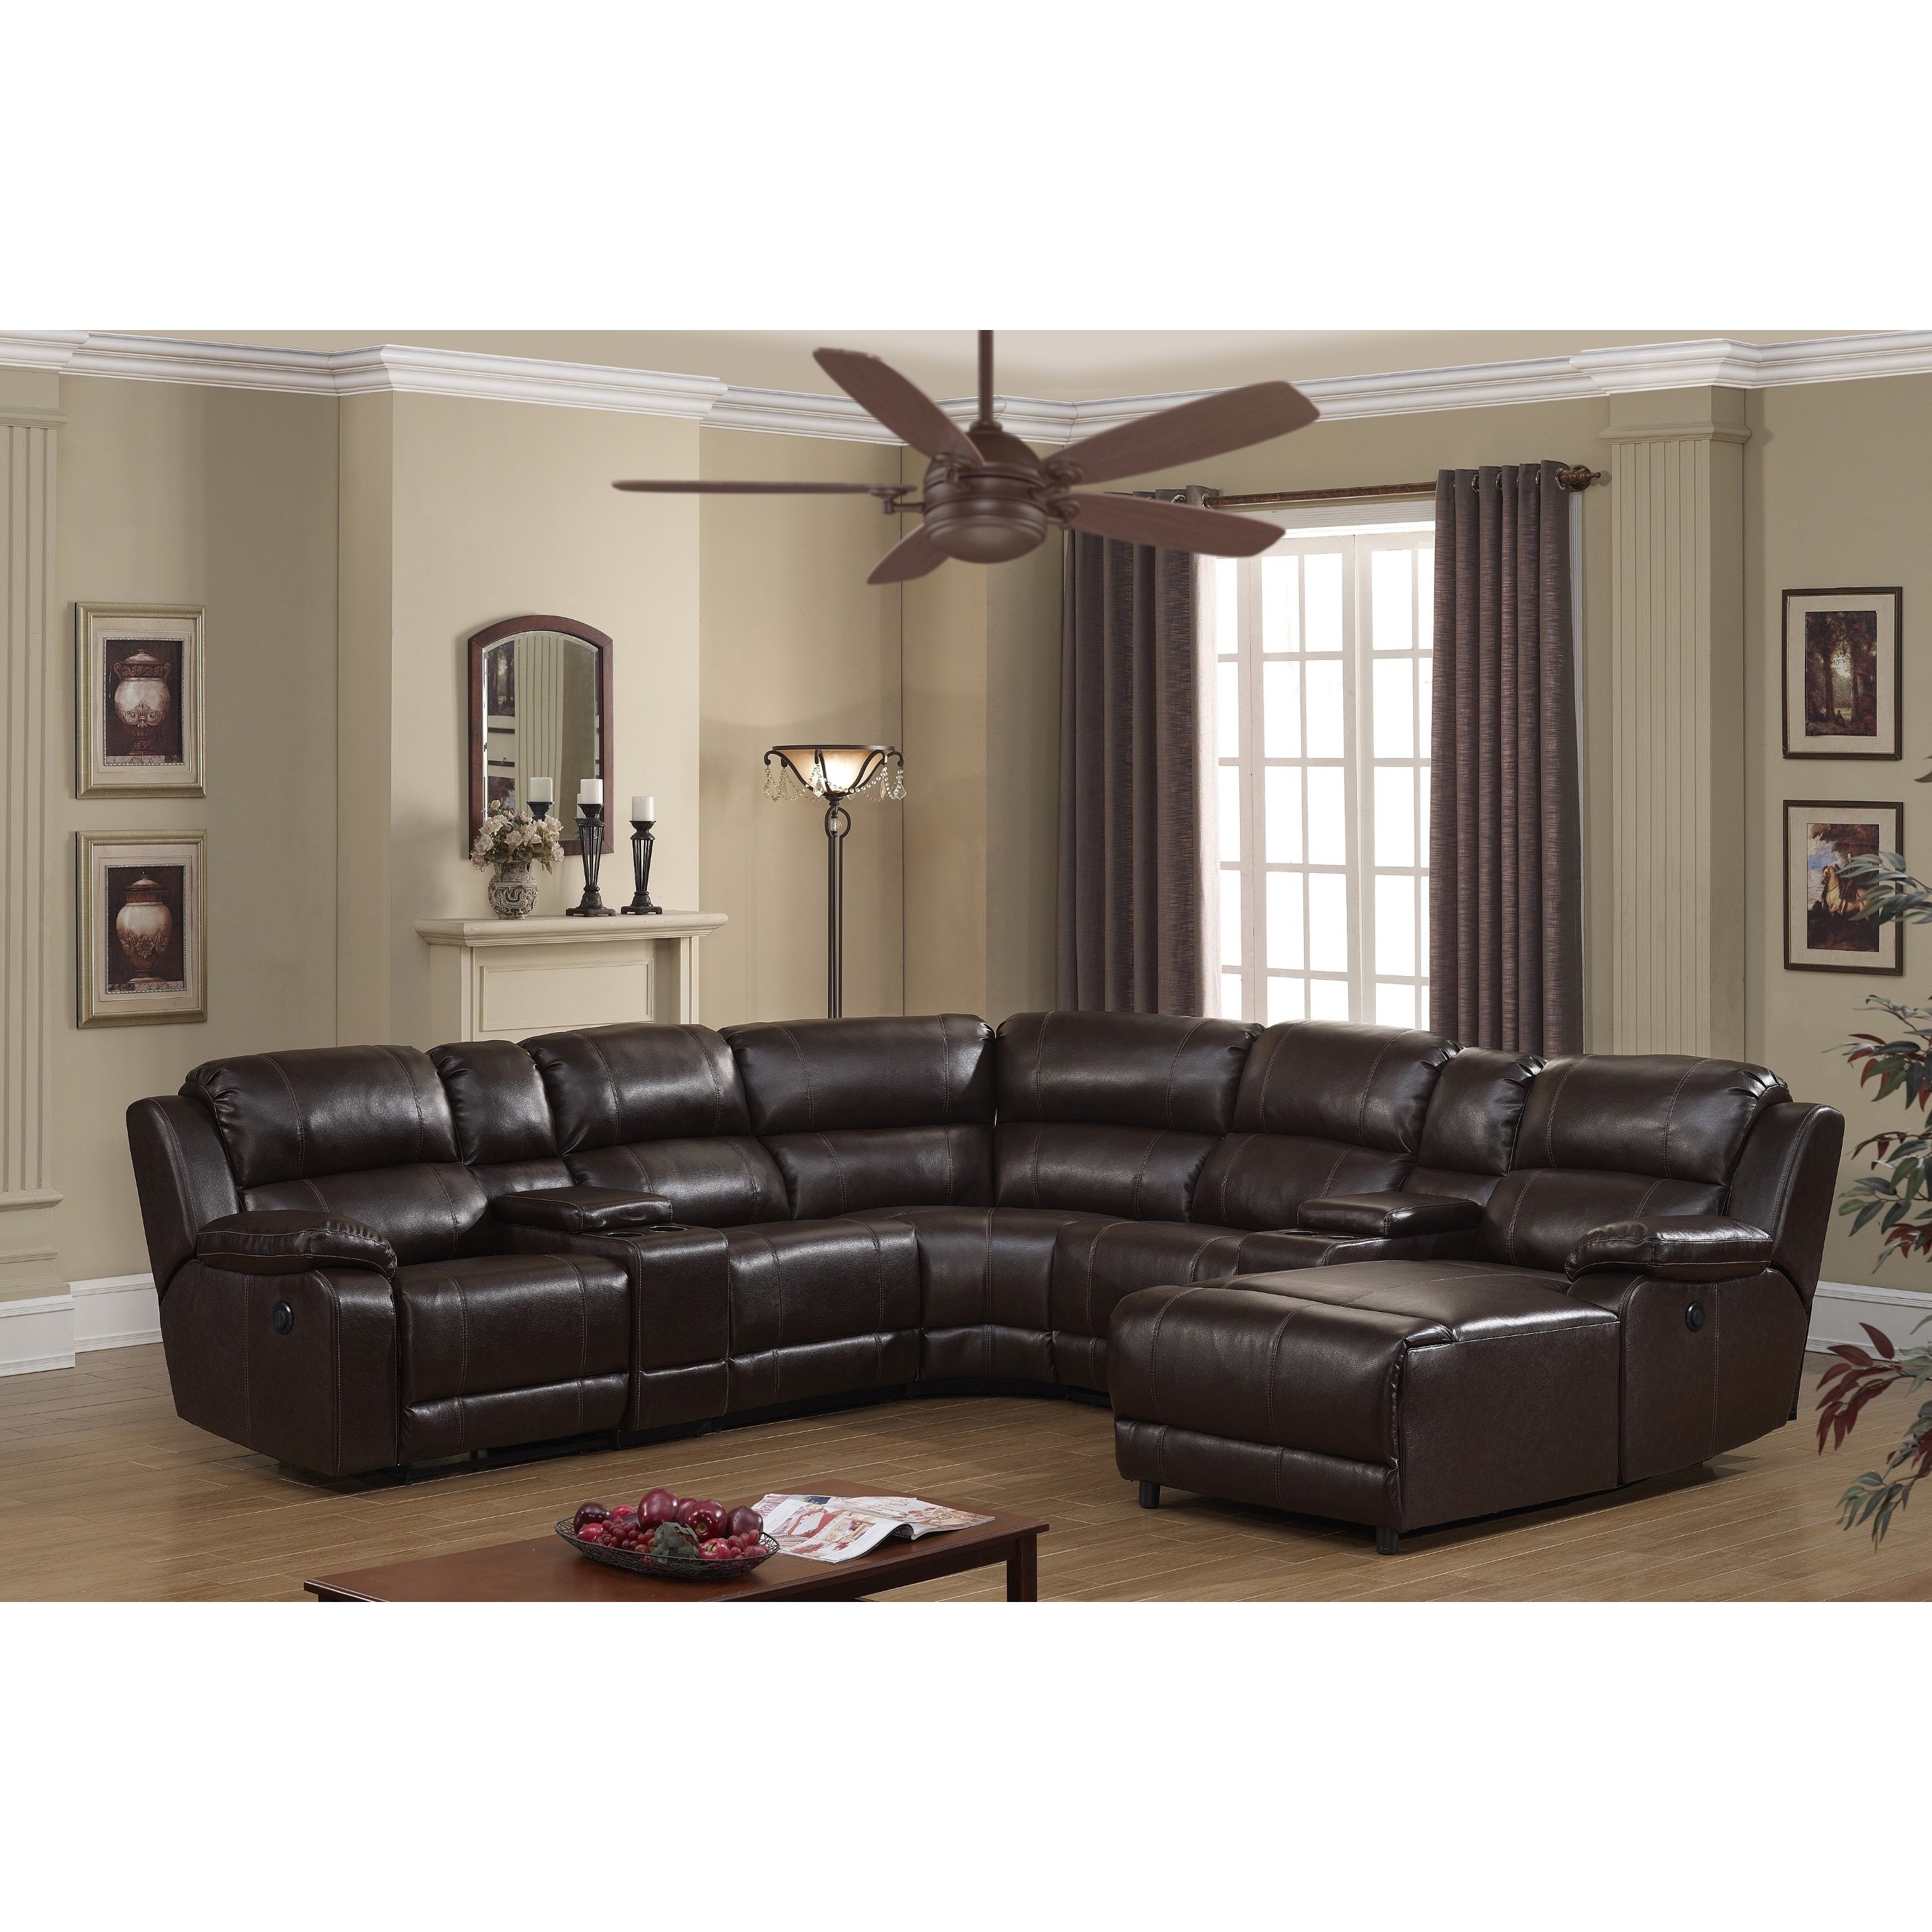 shipping today hillrose garden product home leather free burgundy grain sectional top sofa afda reclining dark overstock